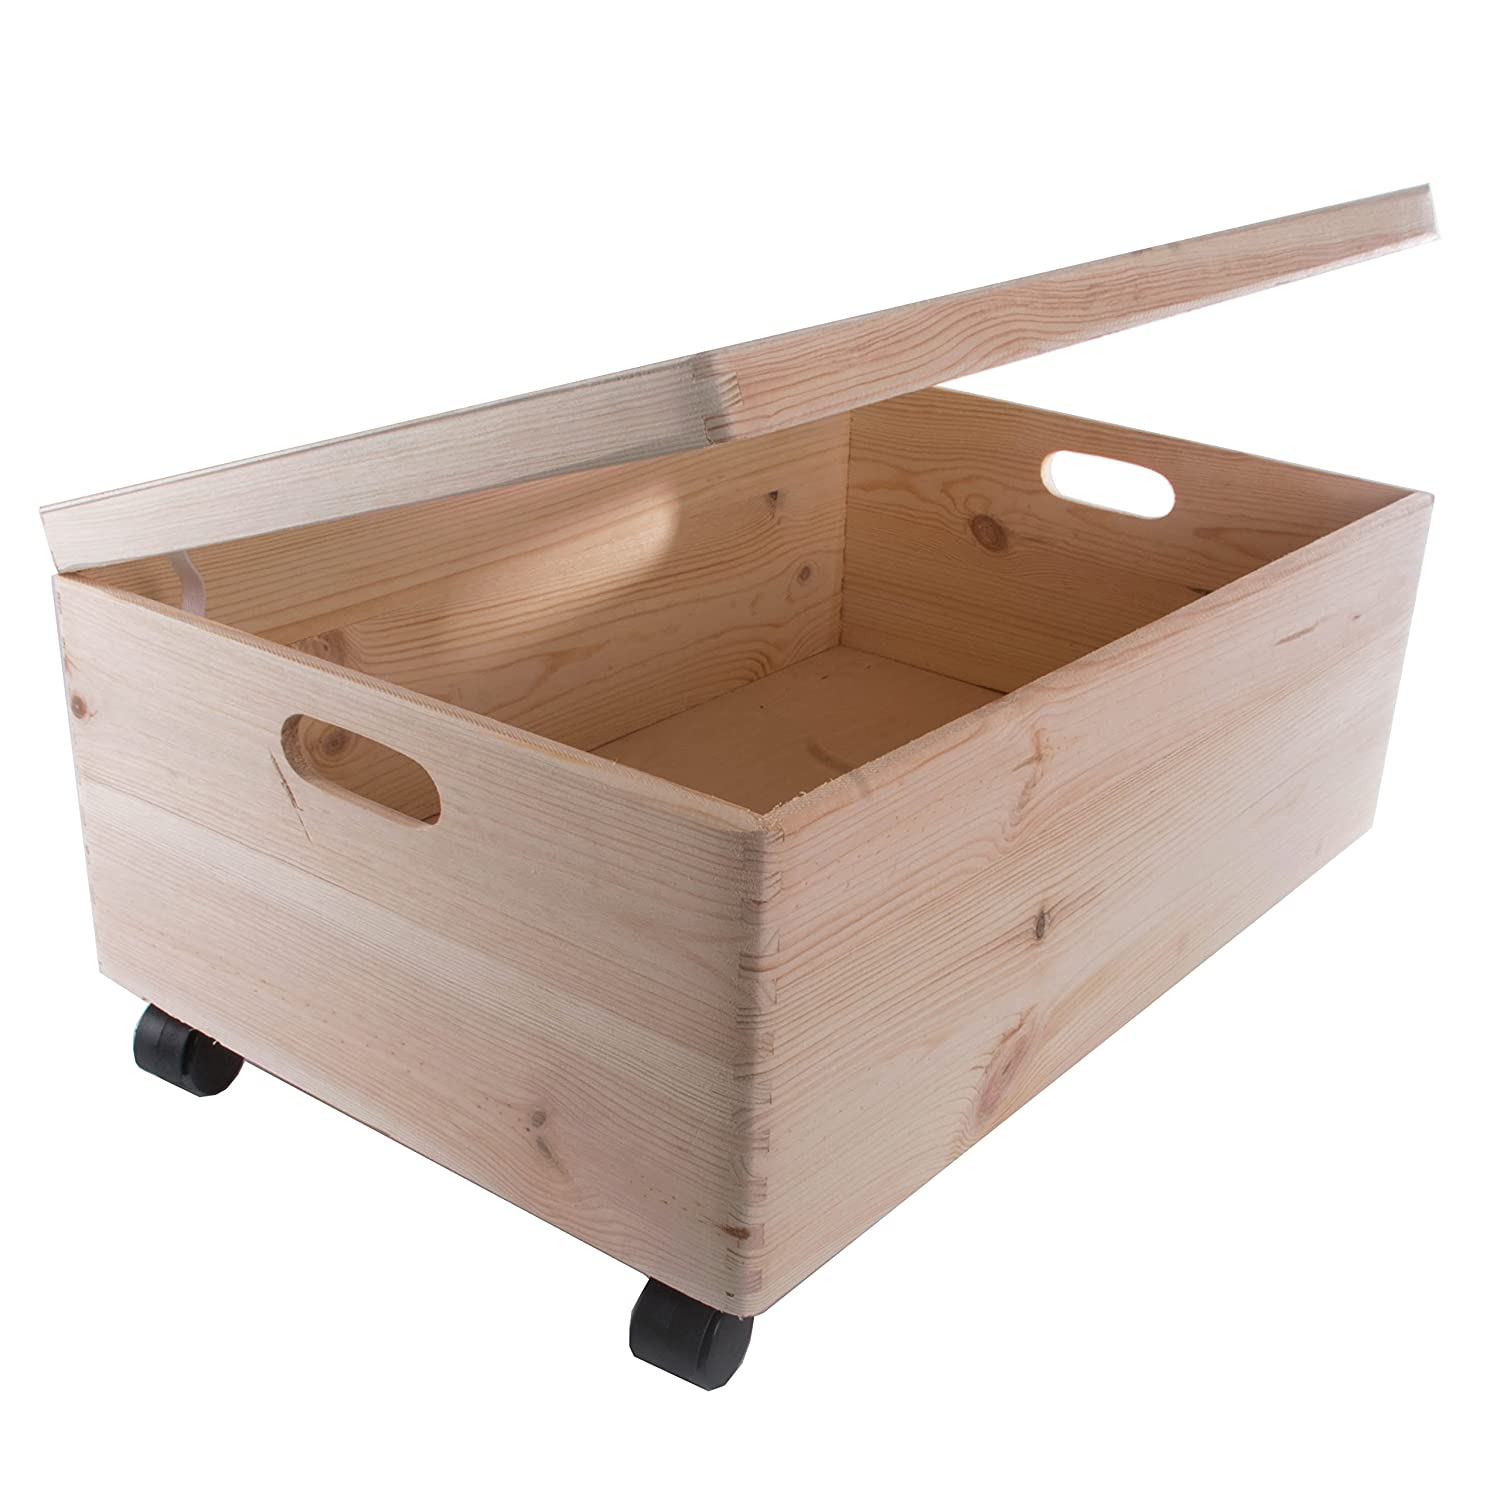 Extra Large Rectanqular Wooden Storage Box With Lid / Wooden Chest With Handles / Storage Trunk /Toy Chest On Wheels 60x 40x 24cm Search Box